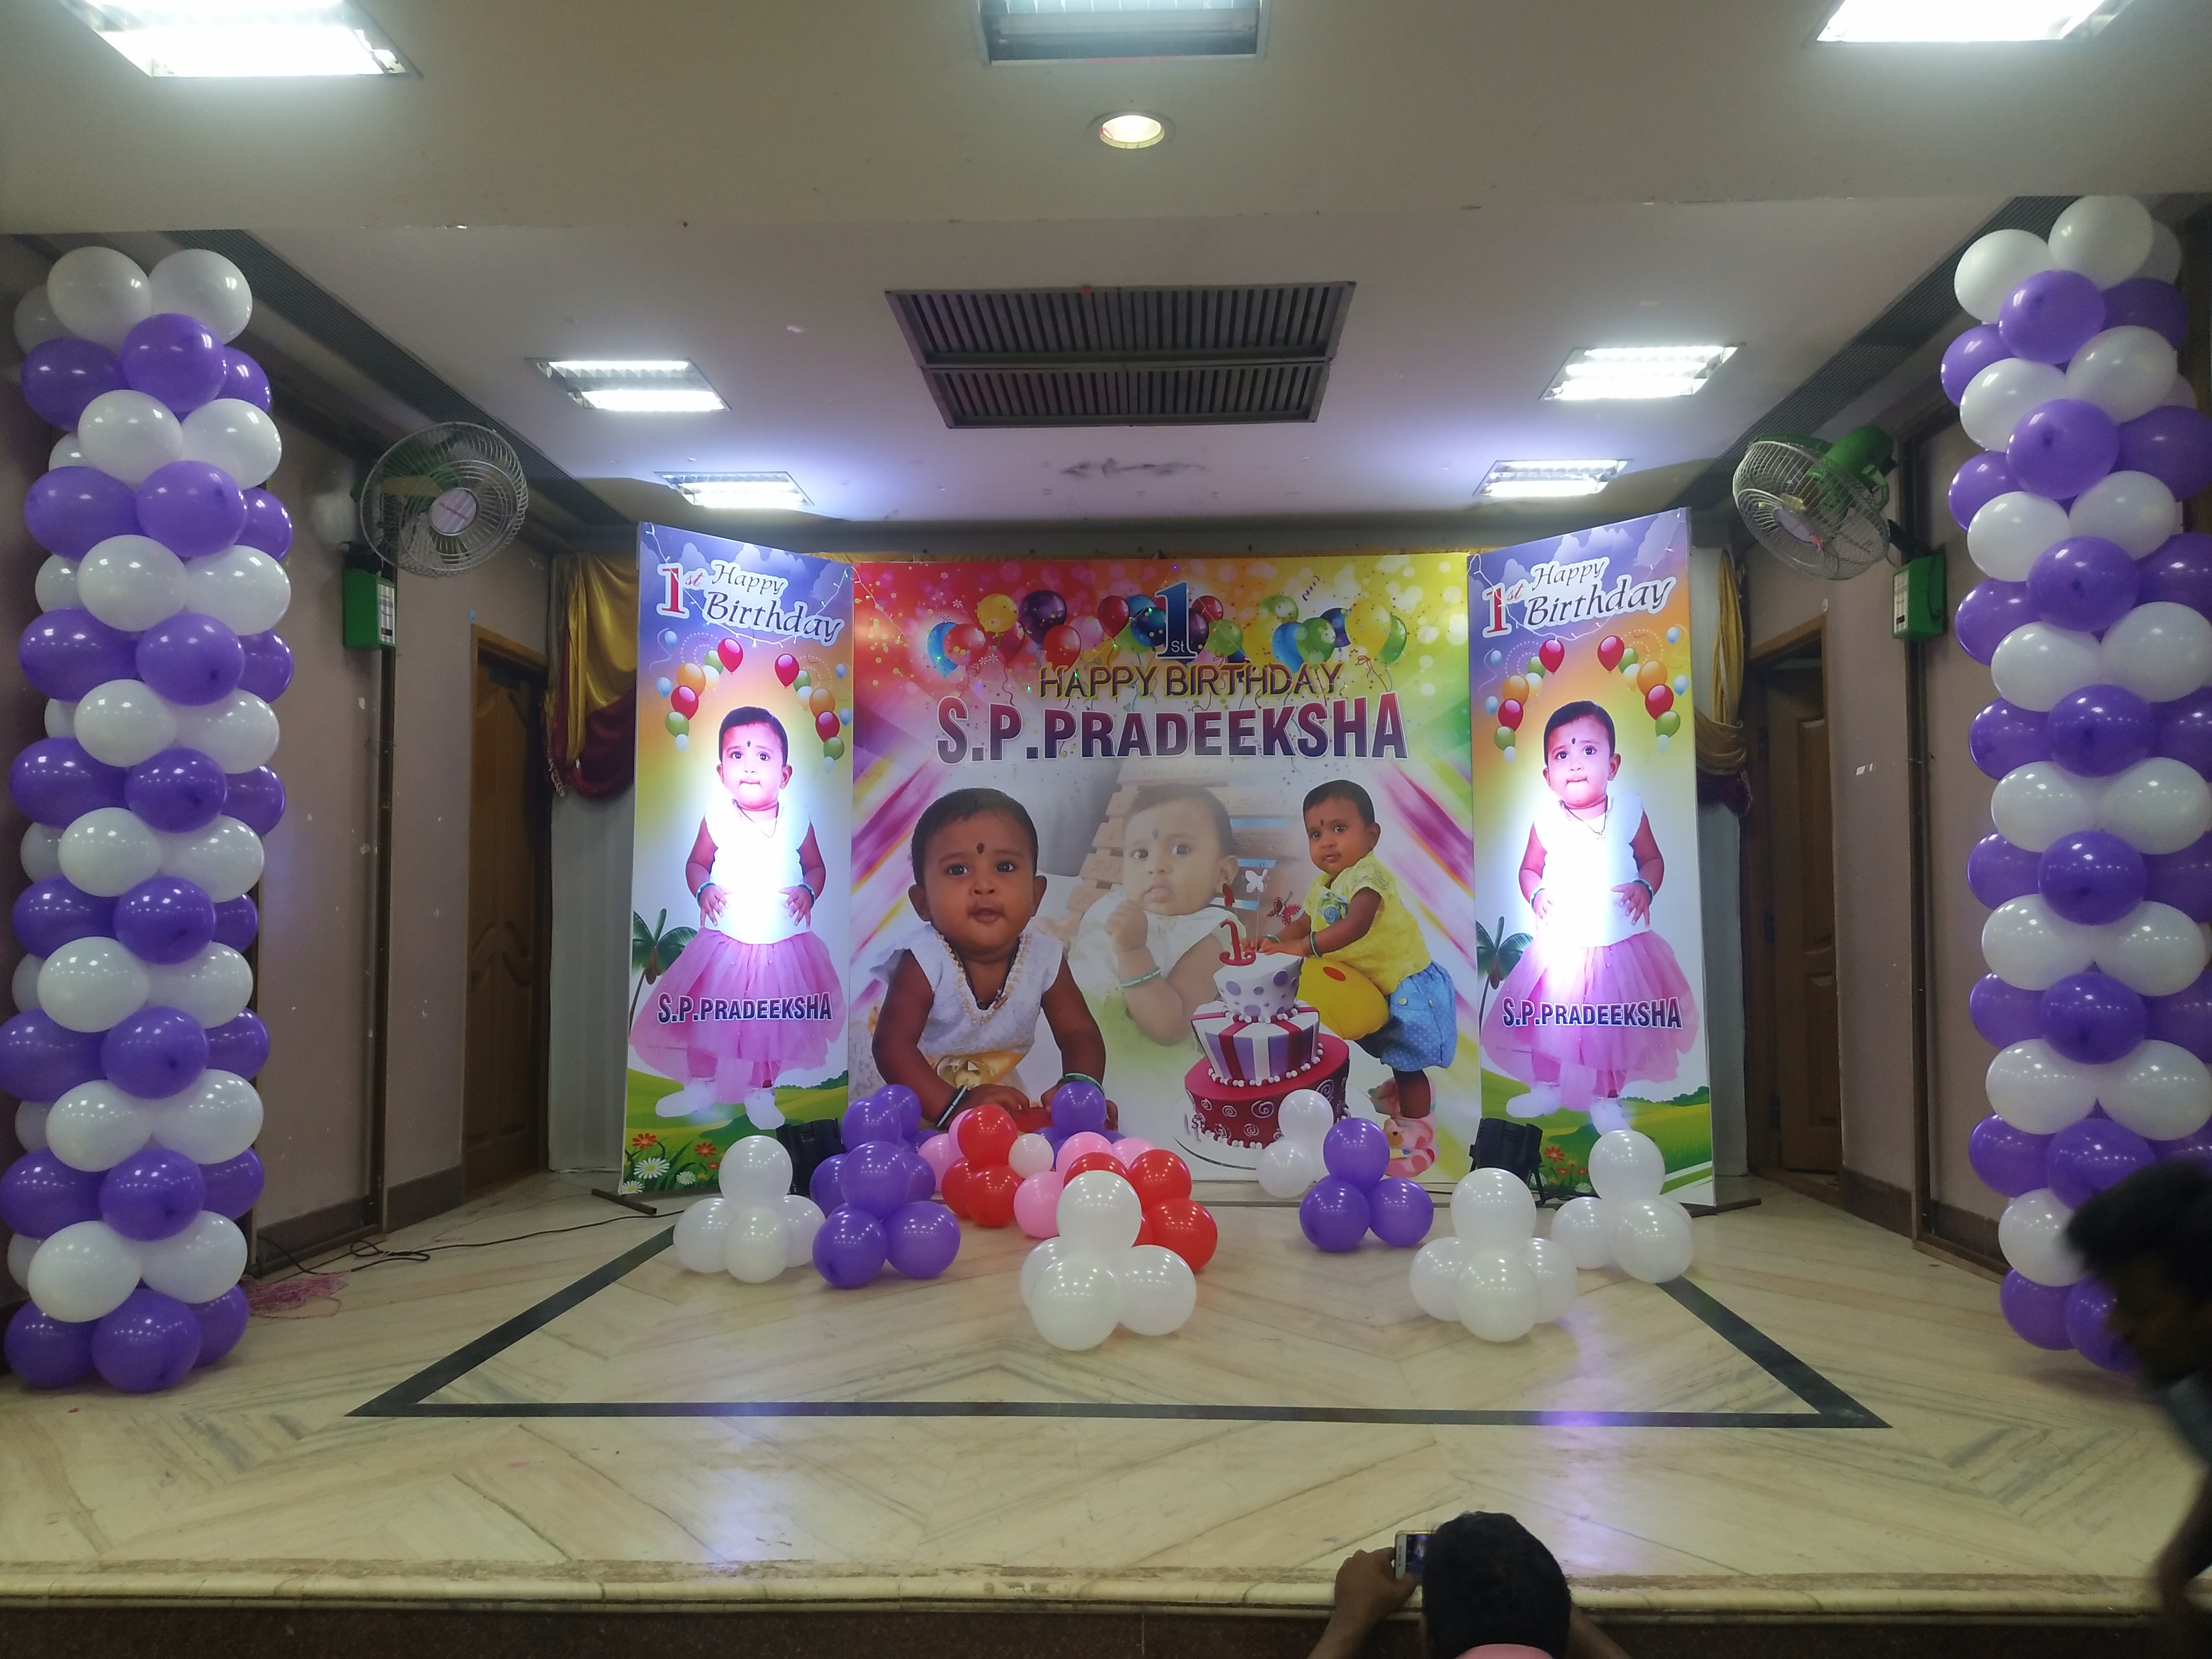 birthday party events ideas ; birthday-party-events-ideas-webp